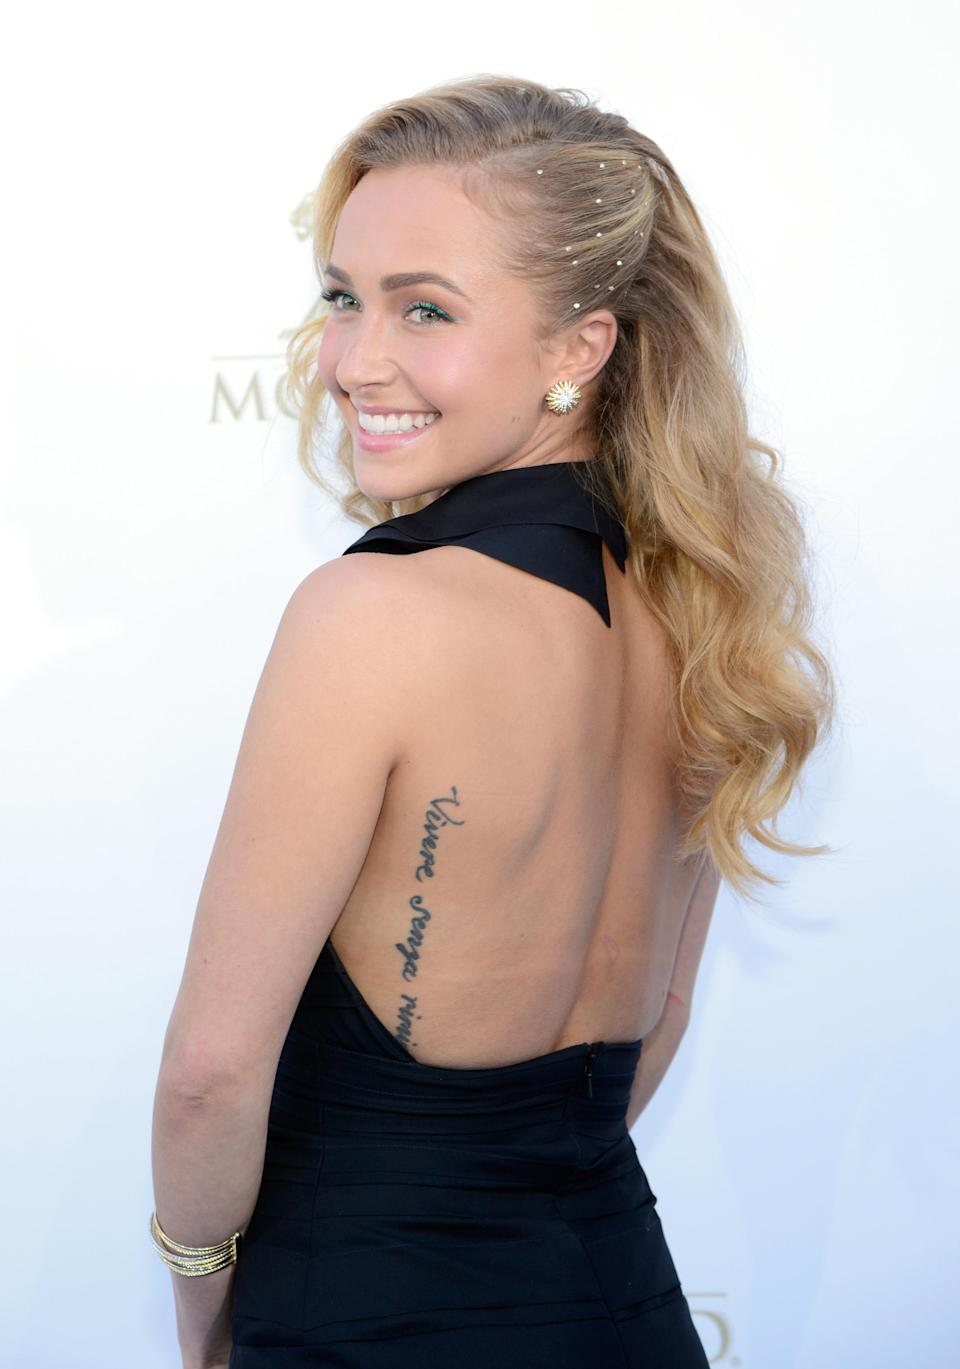 """<p>Poor <b>Hayden Panettiere</b>! The actress' tattoo says, """"Vivere senza rimpianti,"""" which is Italian for """"live without regrets."""" Sadly for her, it's misspelled. It should be """"rimpanti."""" We wonder if she has any regrets about that! Still, it looks cute whenever she wears a backless dress—and she talks about the gaffe openly <a href=""""http://metro.co.uk/2011/04/27/hayden-panettiere-regrets-misspelt-tattoo-fail-653640/"""" rel=""""nofollow noopener"""" target=""""_blank"""" data-ylk=""""slk:and makes light of it"""" class=""""link rapid-noclick-resp"""">and makes light of it</a>. </p>"""